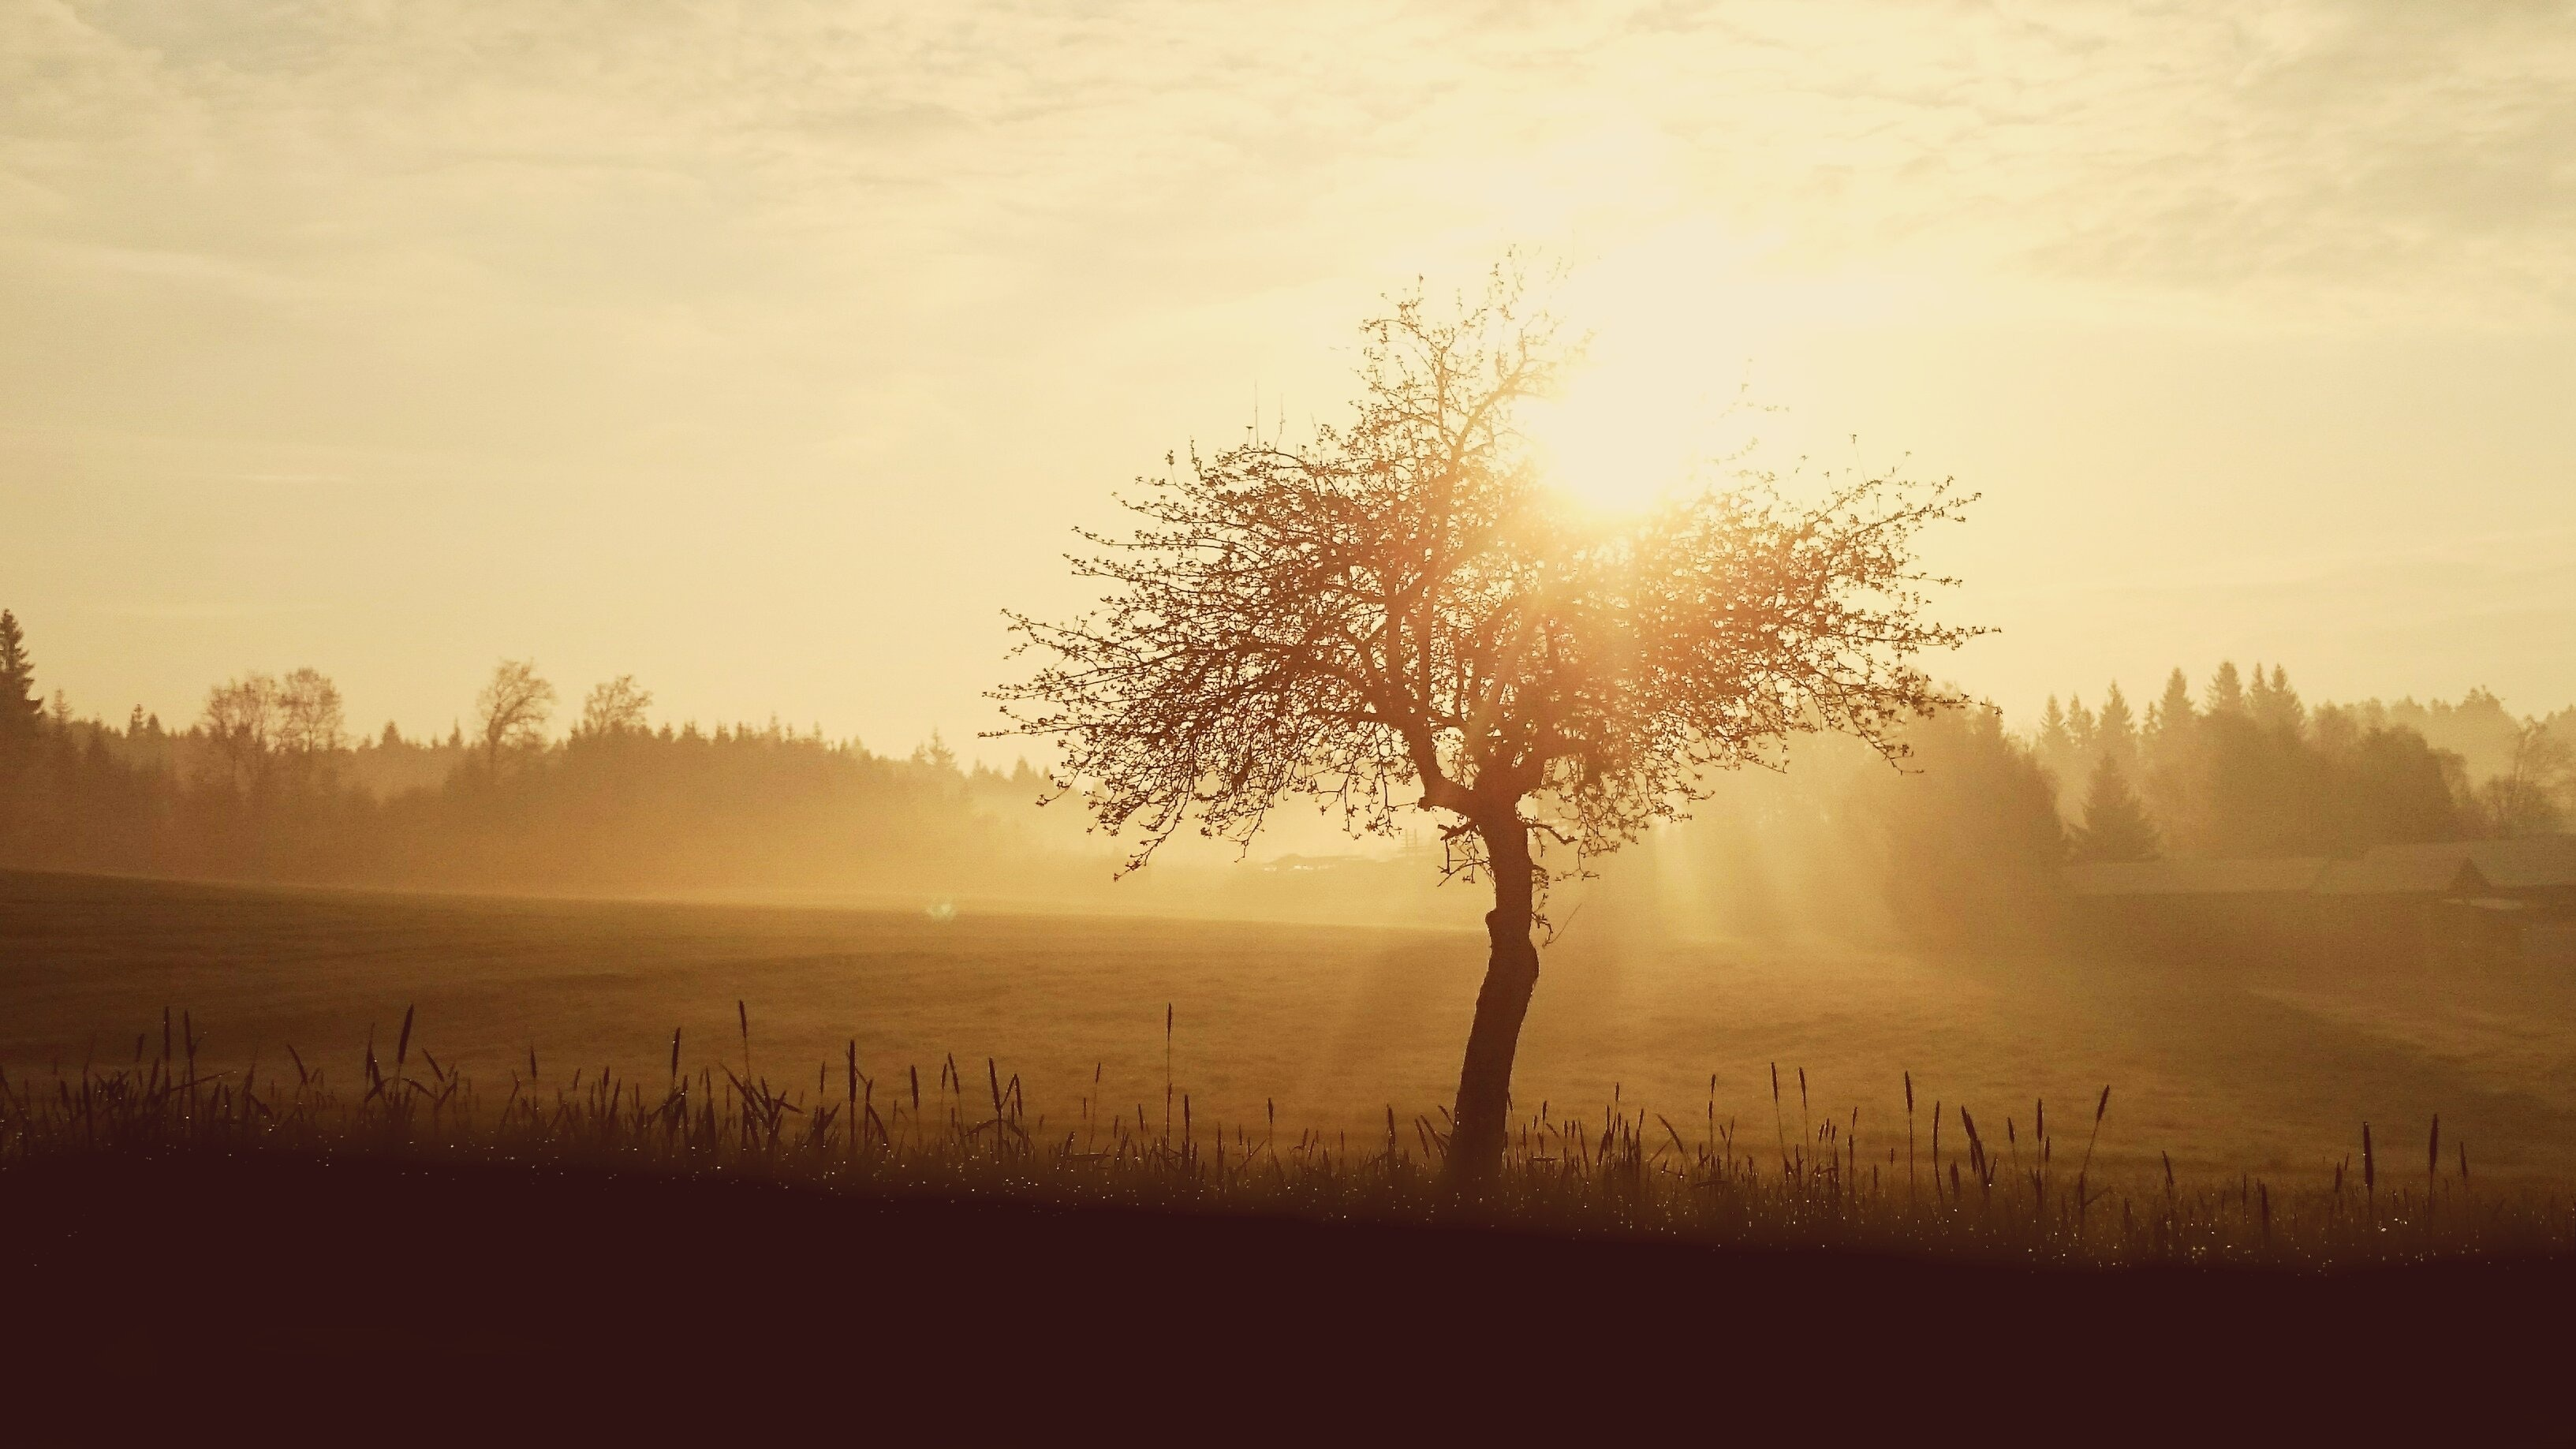 Fall Dog Wallpaper Free Photo Silhouette Of Tree During Sunset Summer